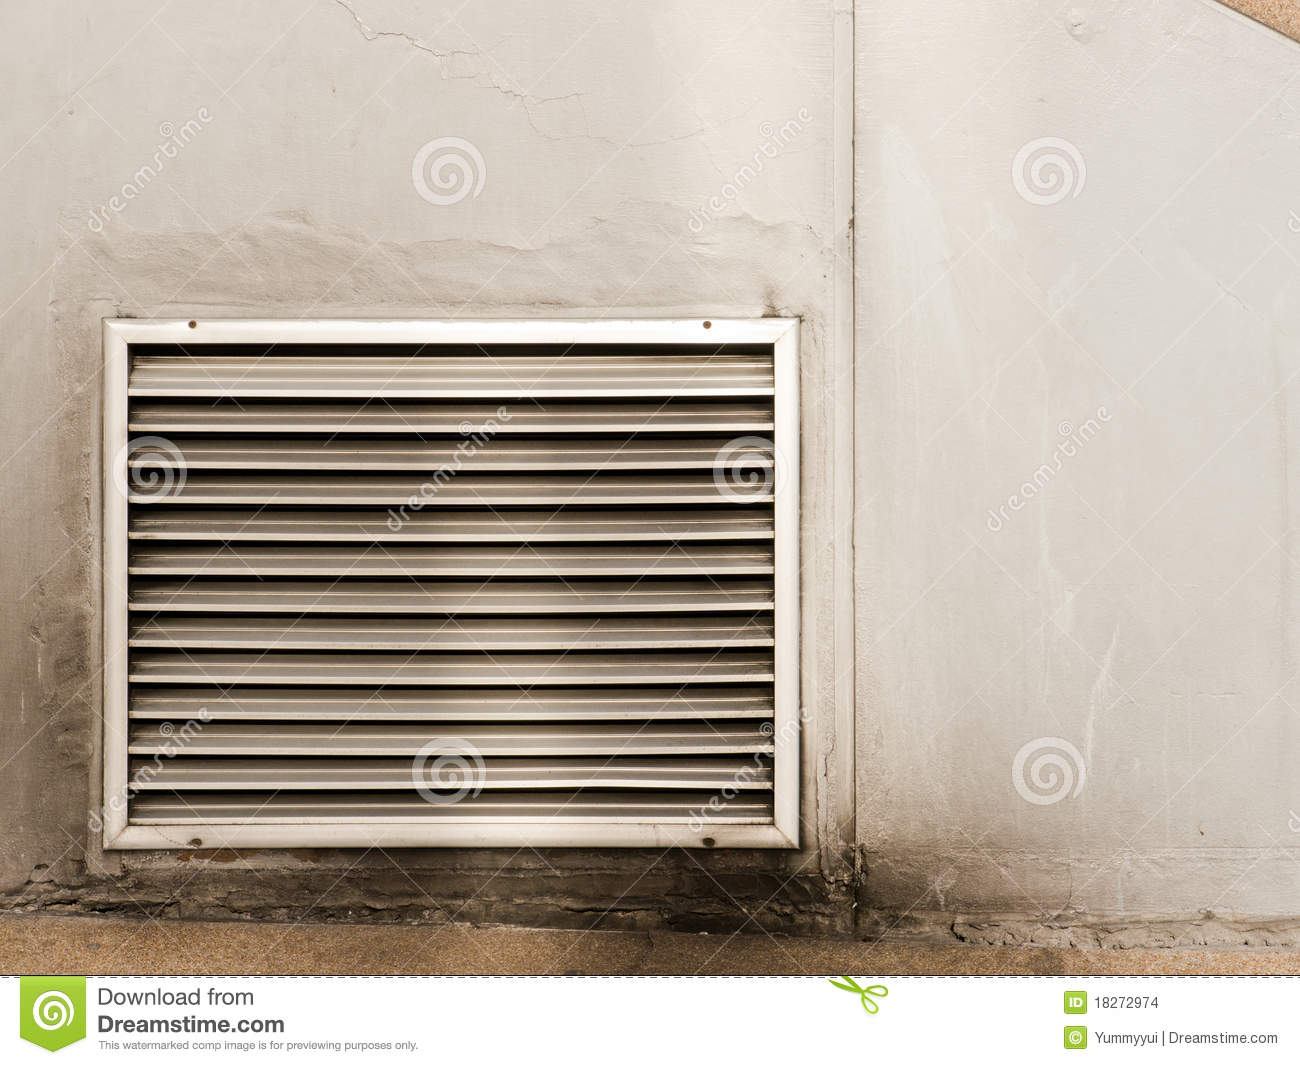 Air Ventilator Wall : Wall air vent stock photo image of detail gritty mask